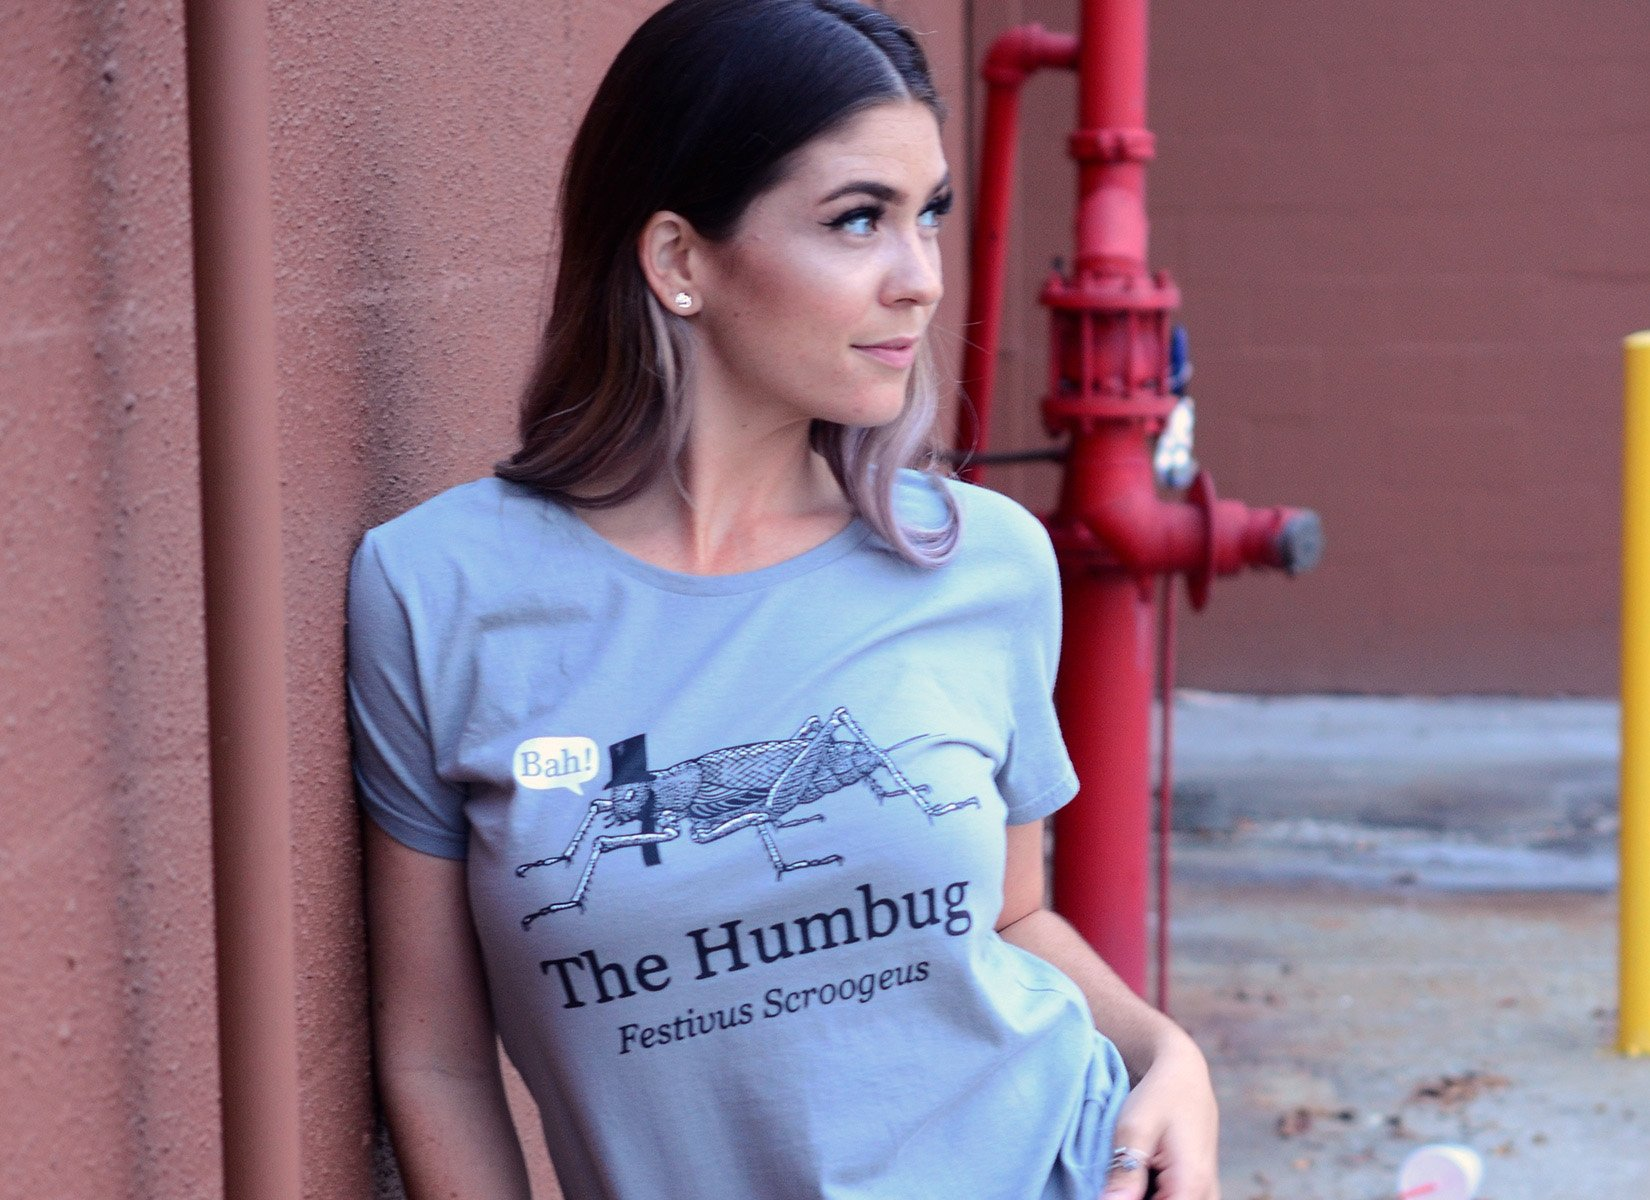 The Humbug on Womens T-Shirt